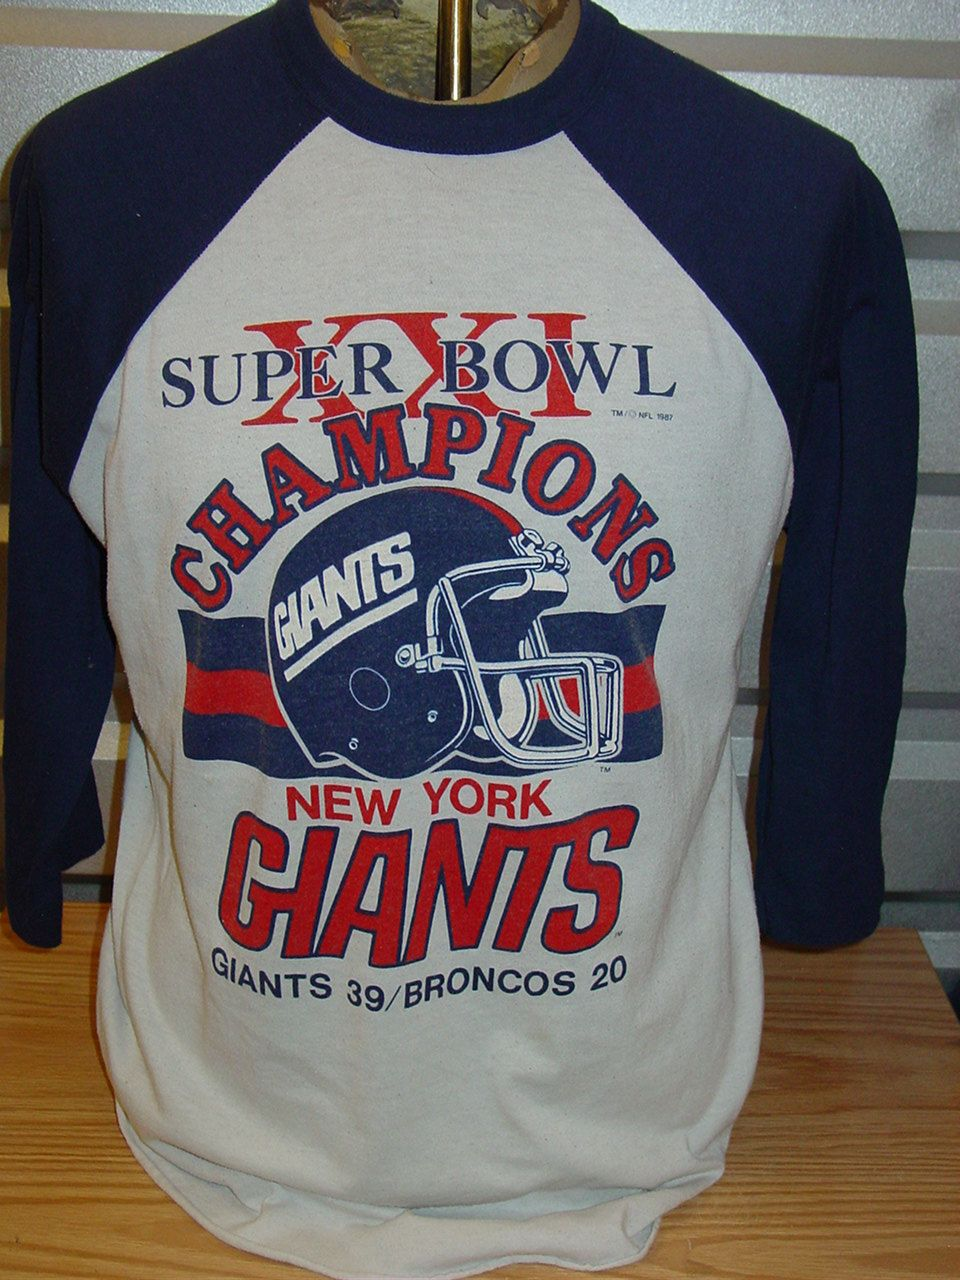 4f883cd88 vintage 1987 New York Giants super bowl NFL football t shirt XL by  vintagerhino247 on Etsy